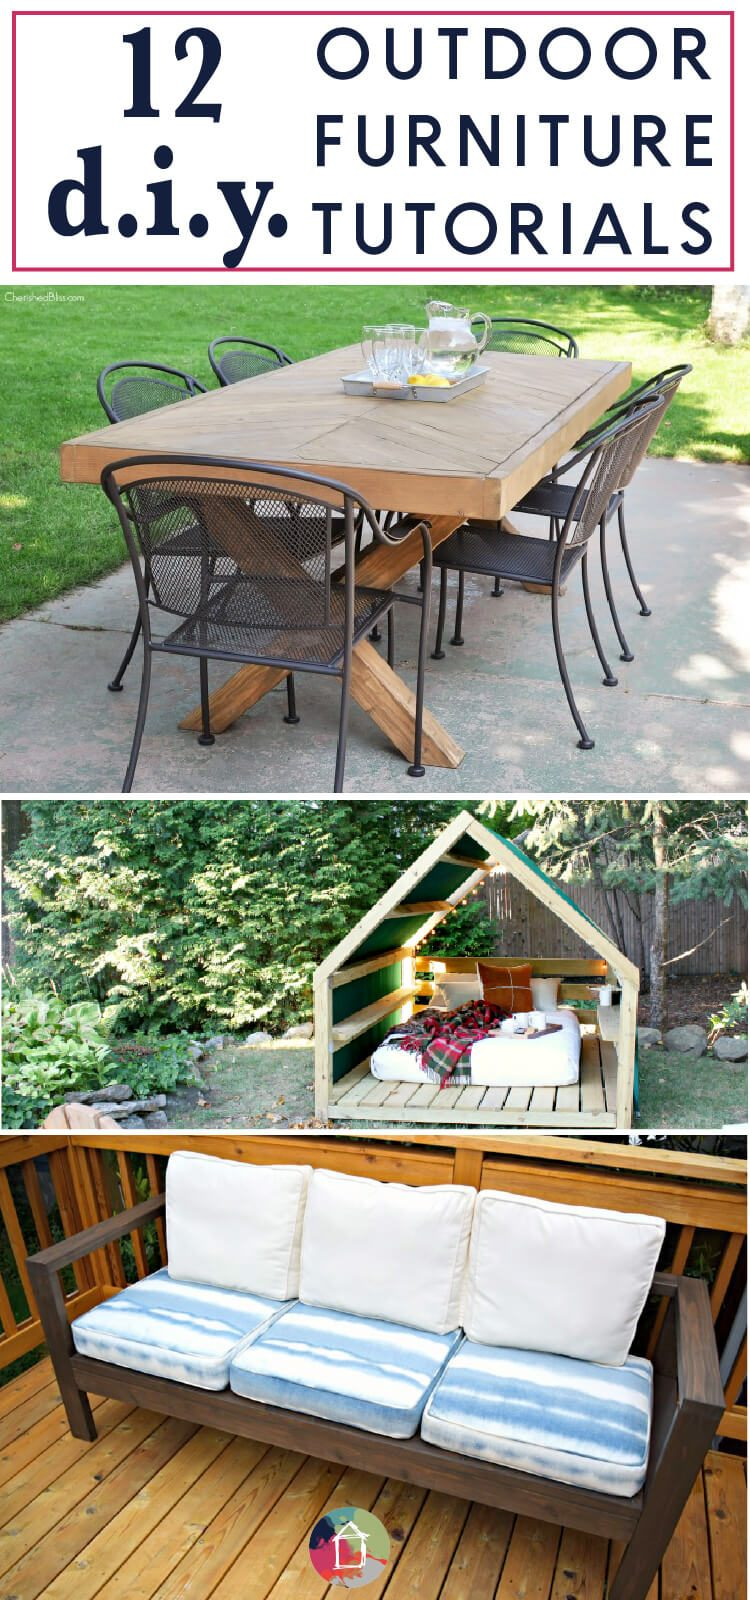 Diy outdoor furniture creative affordable ideas Most expensive outdoor furniture